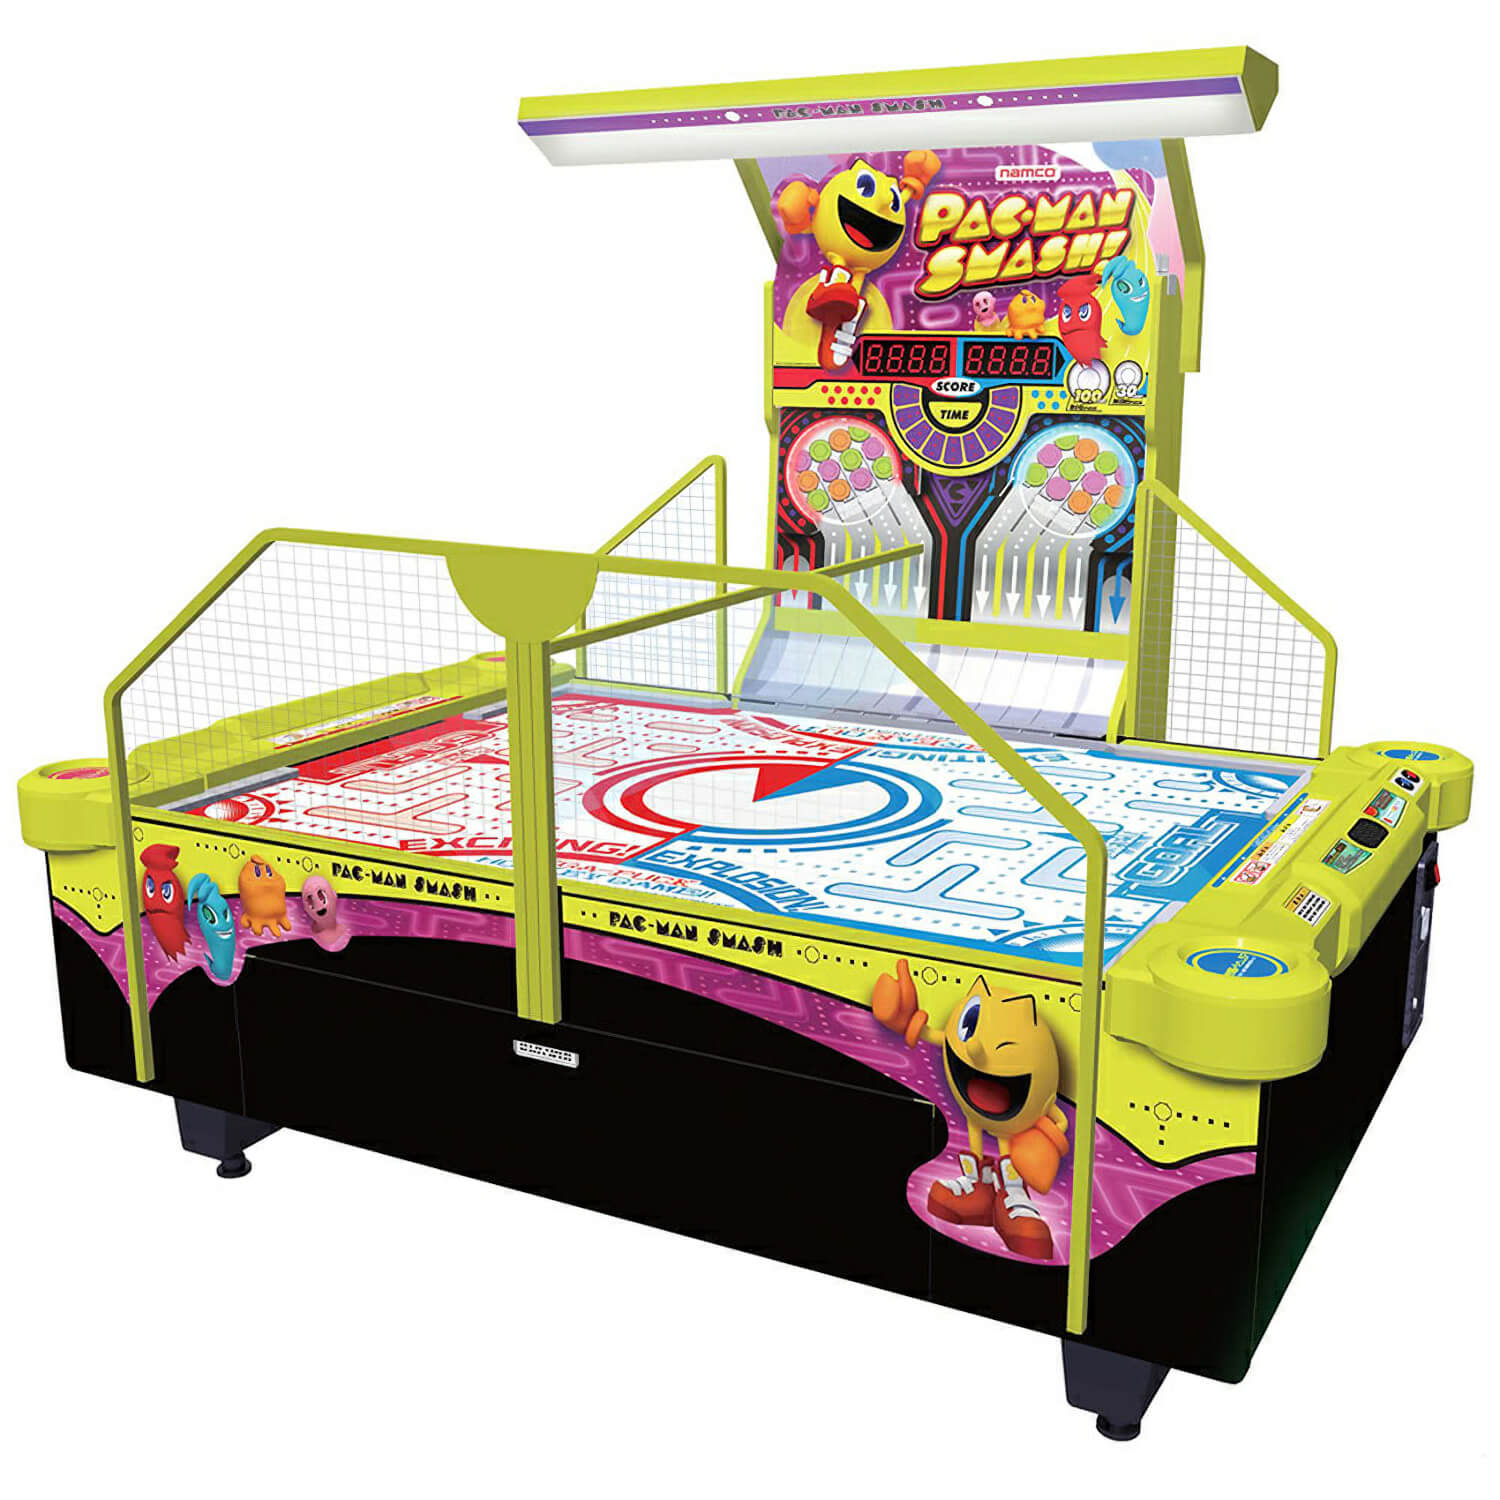 Namco Pac Man Smash Arcade Air Hockey Table Reconditioned